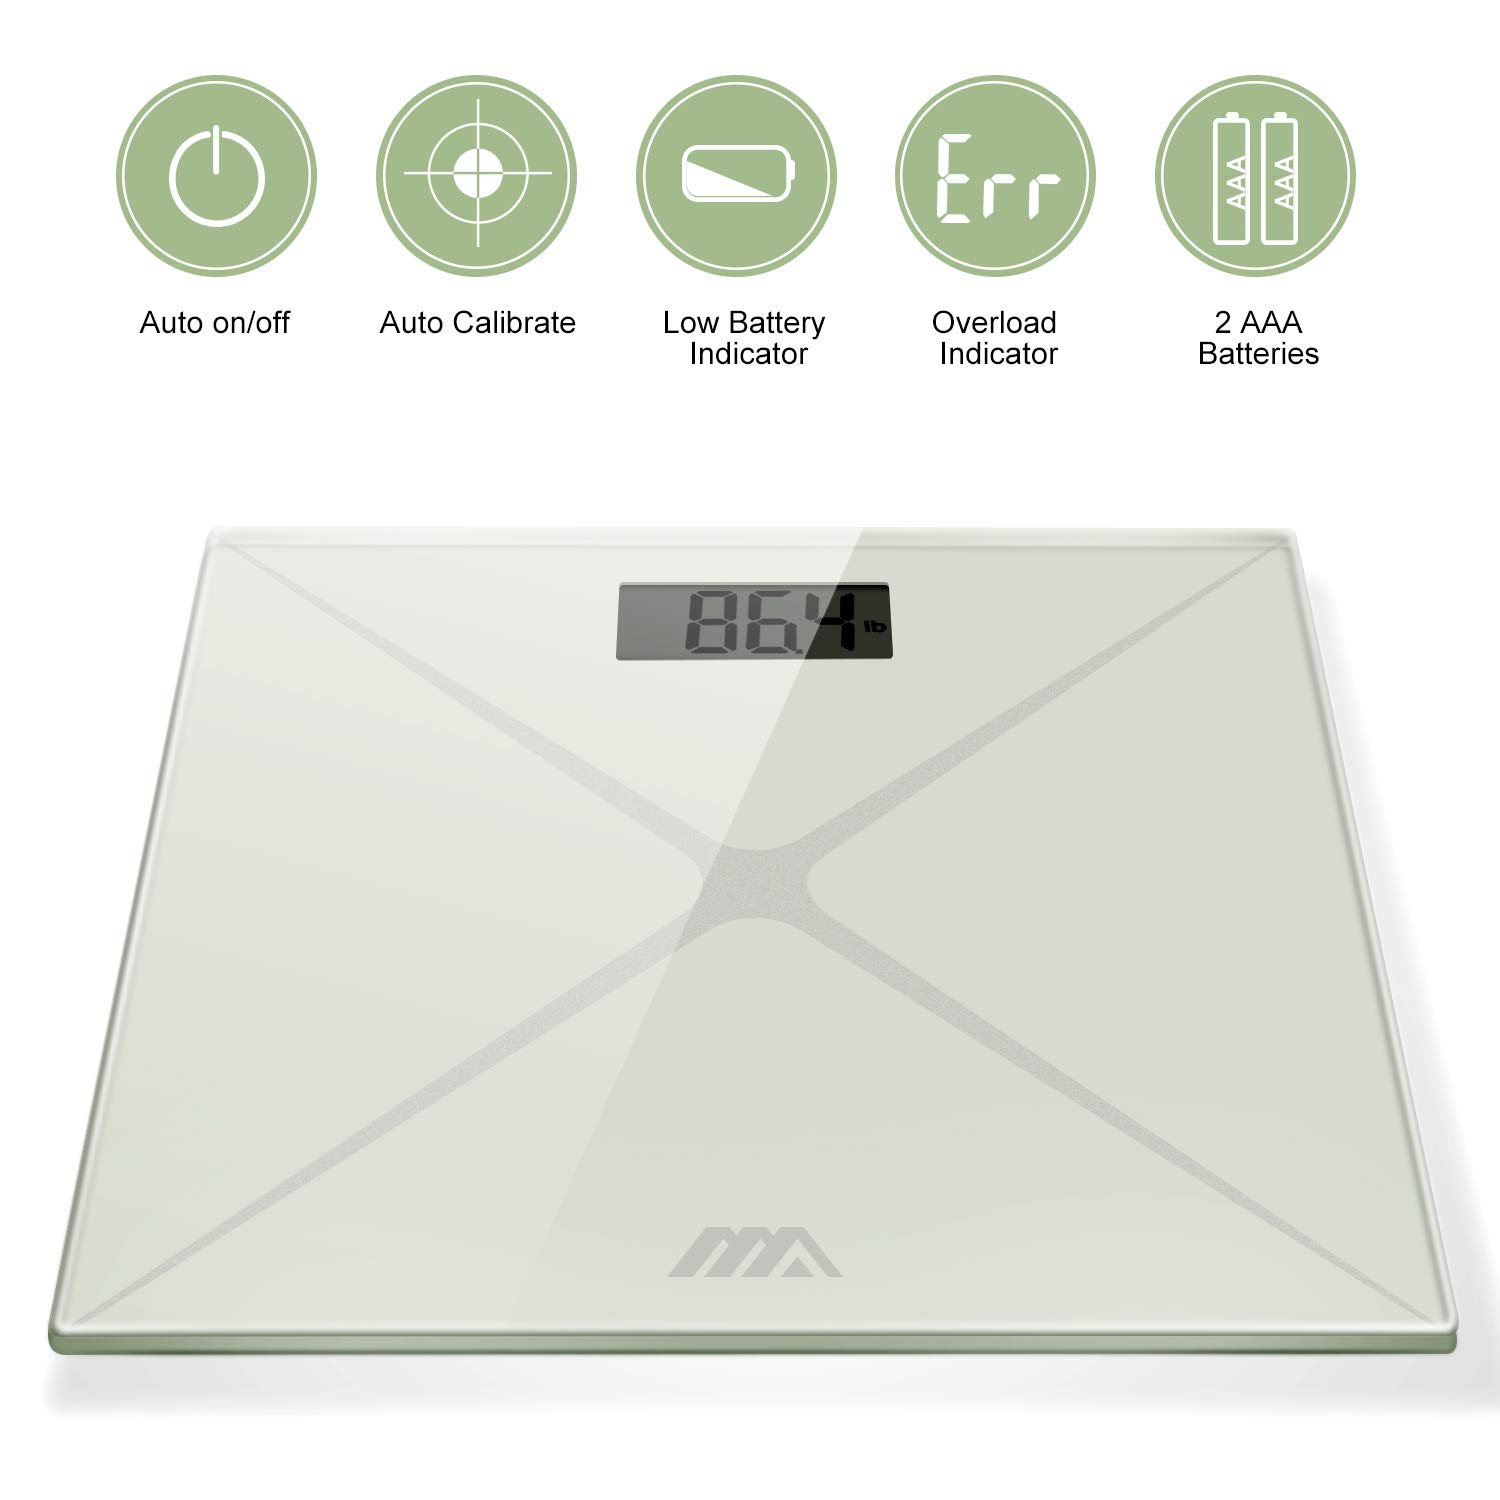 Digital Body Weight Scale, Bathroom Scale with Advanced Step-on Technology and LCD Backlight Display Scale,Tempered Glass Surface (White Silver) by AdorioPower (Image #3)